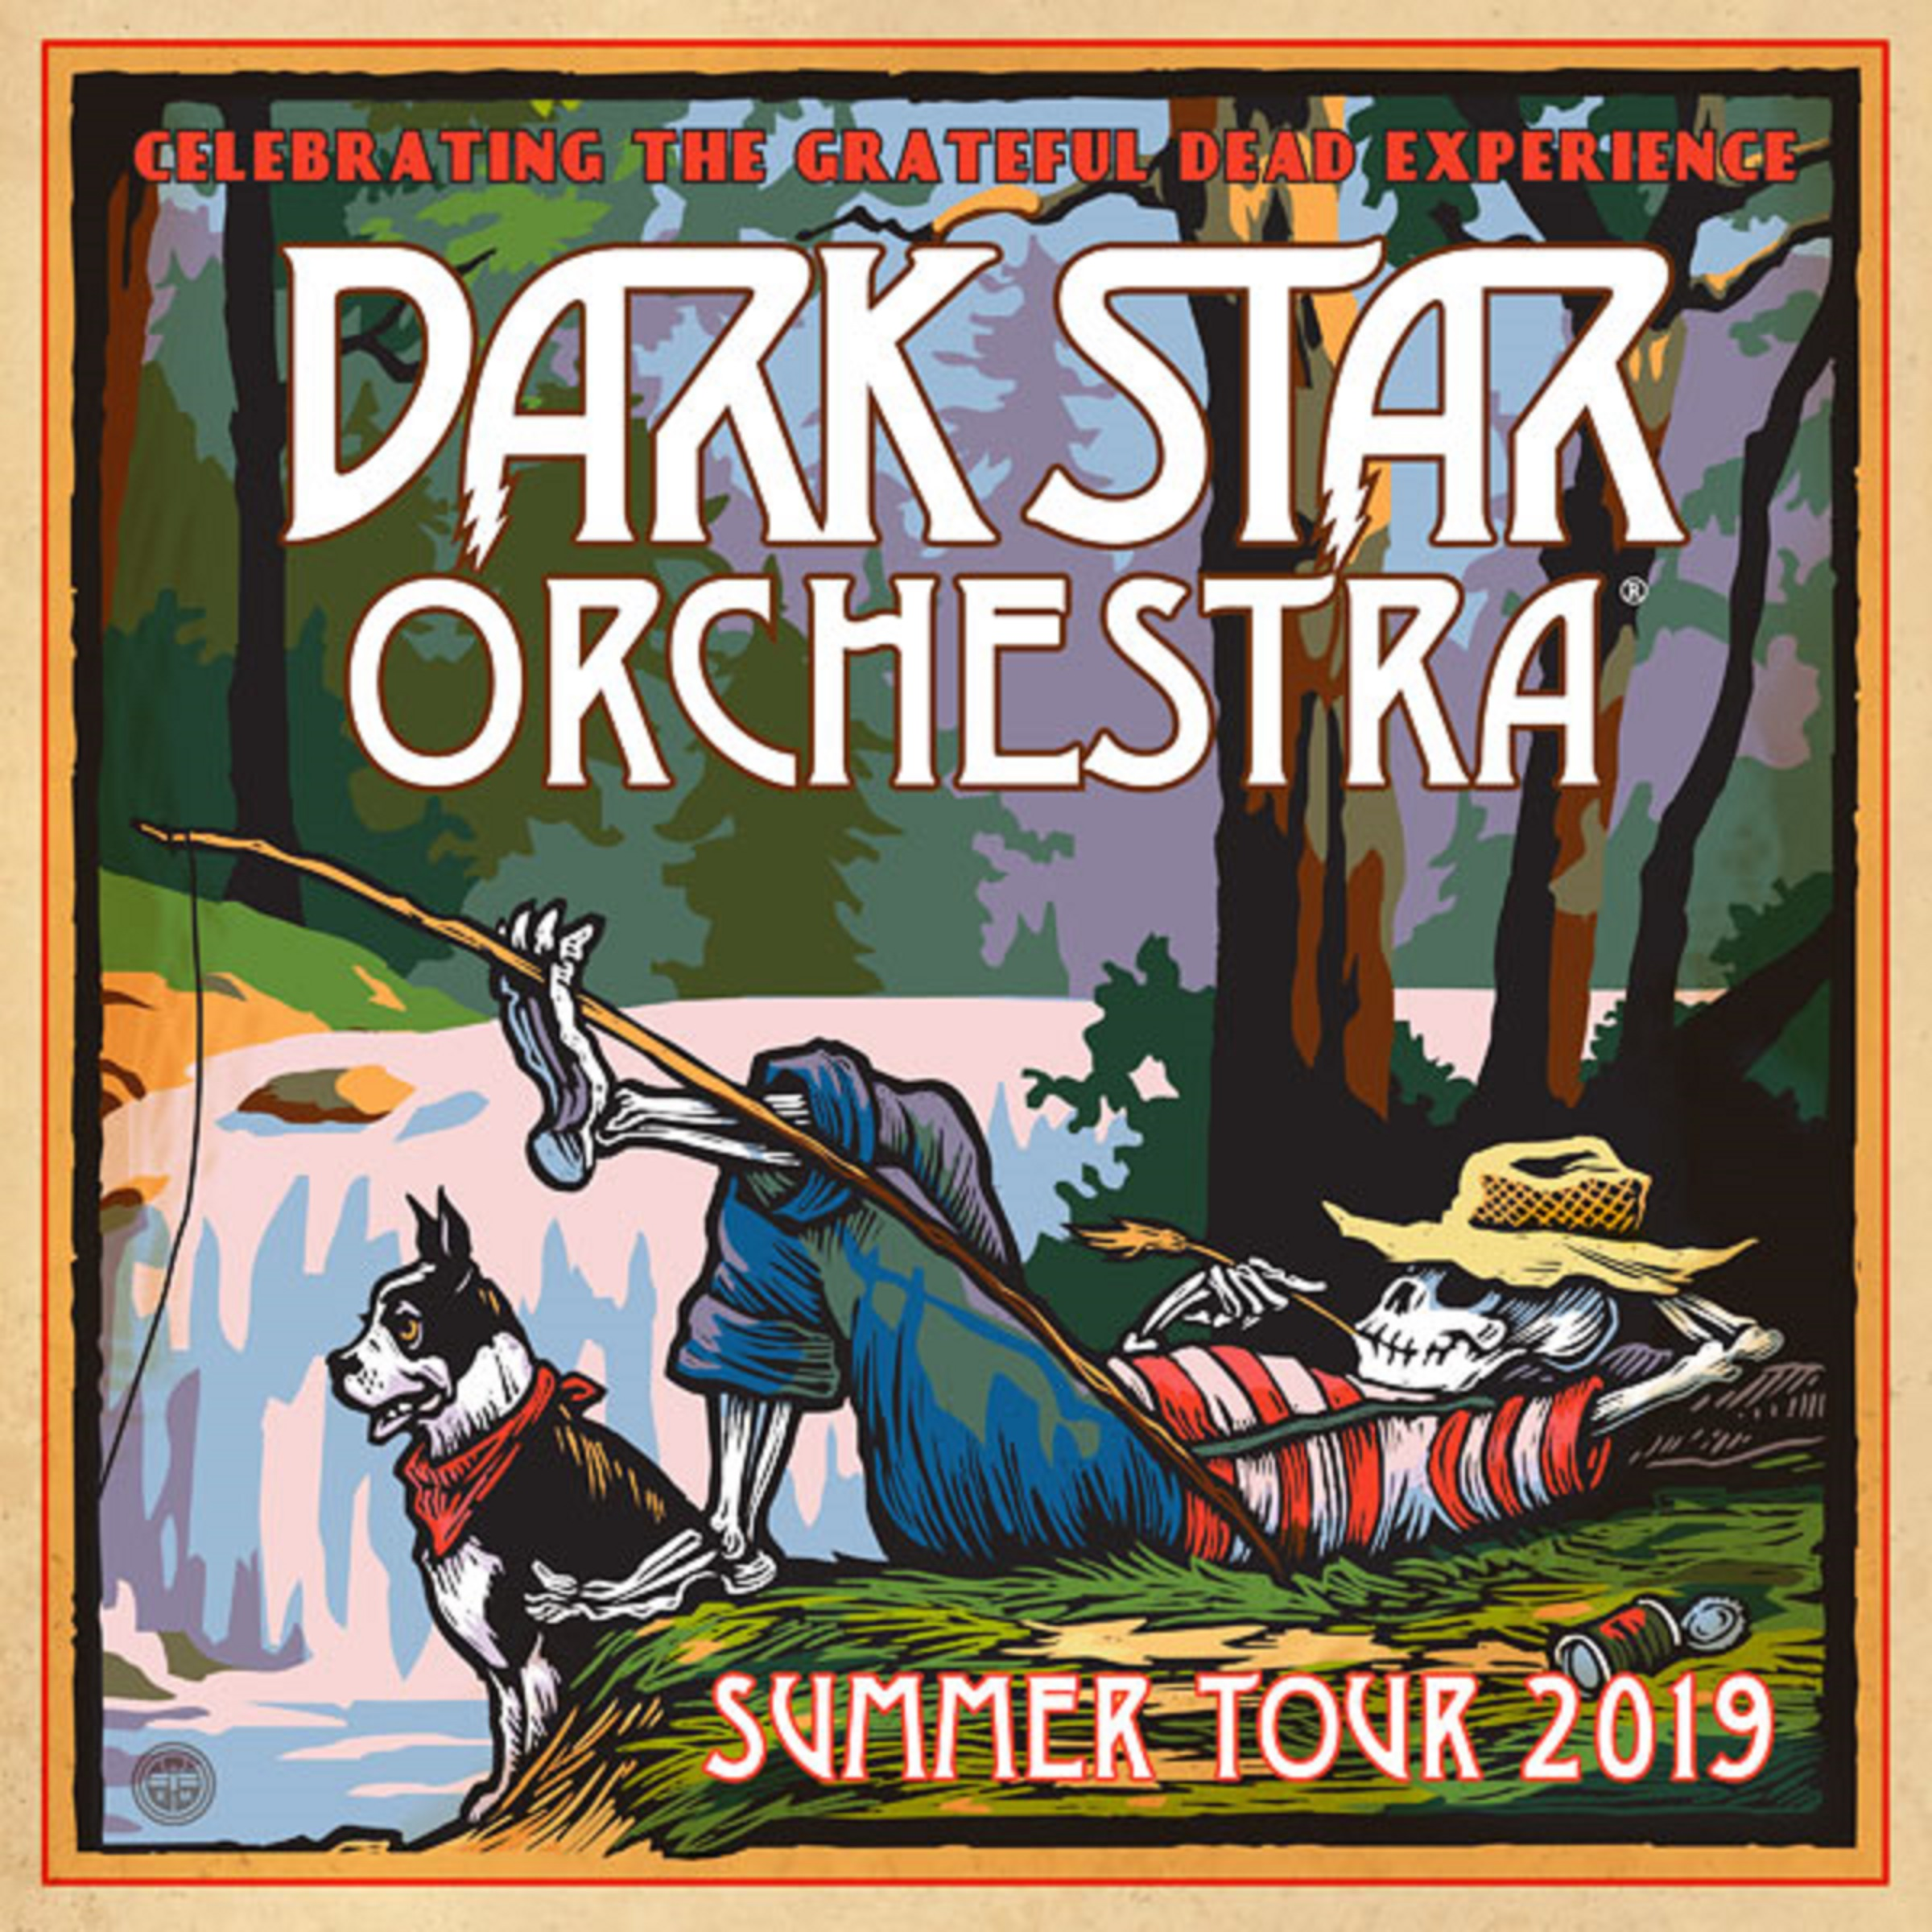 Dark Star Orchestra Announces Summer Tour 2019